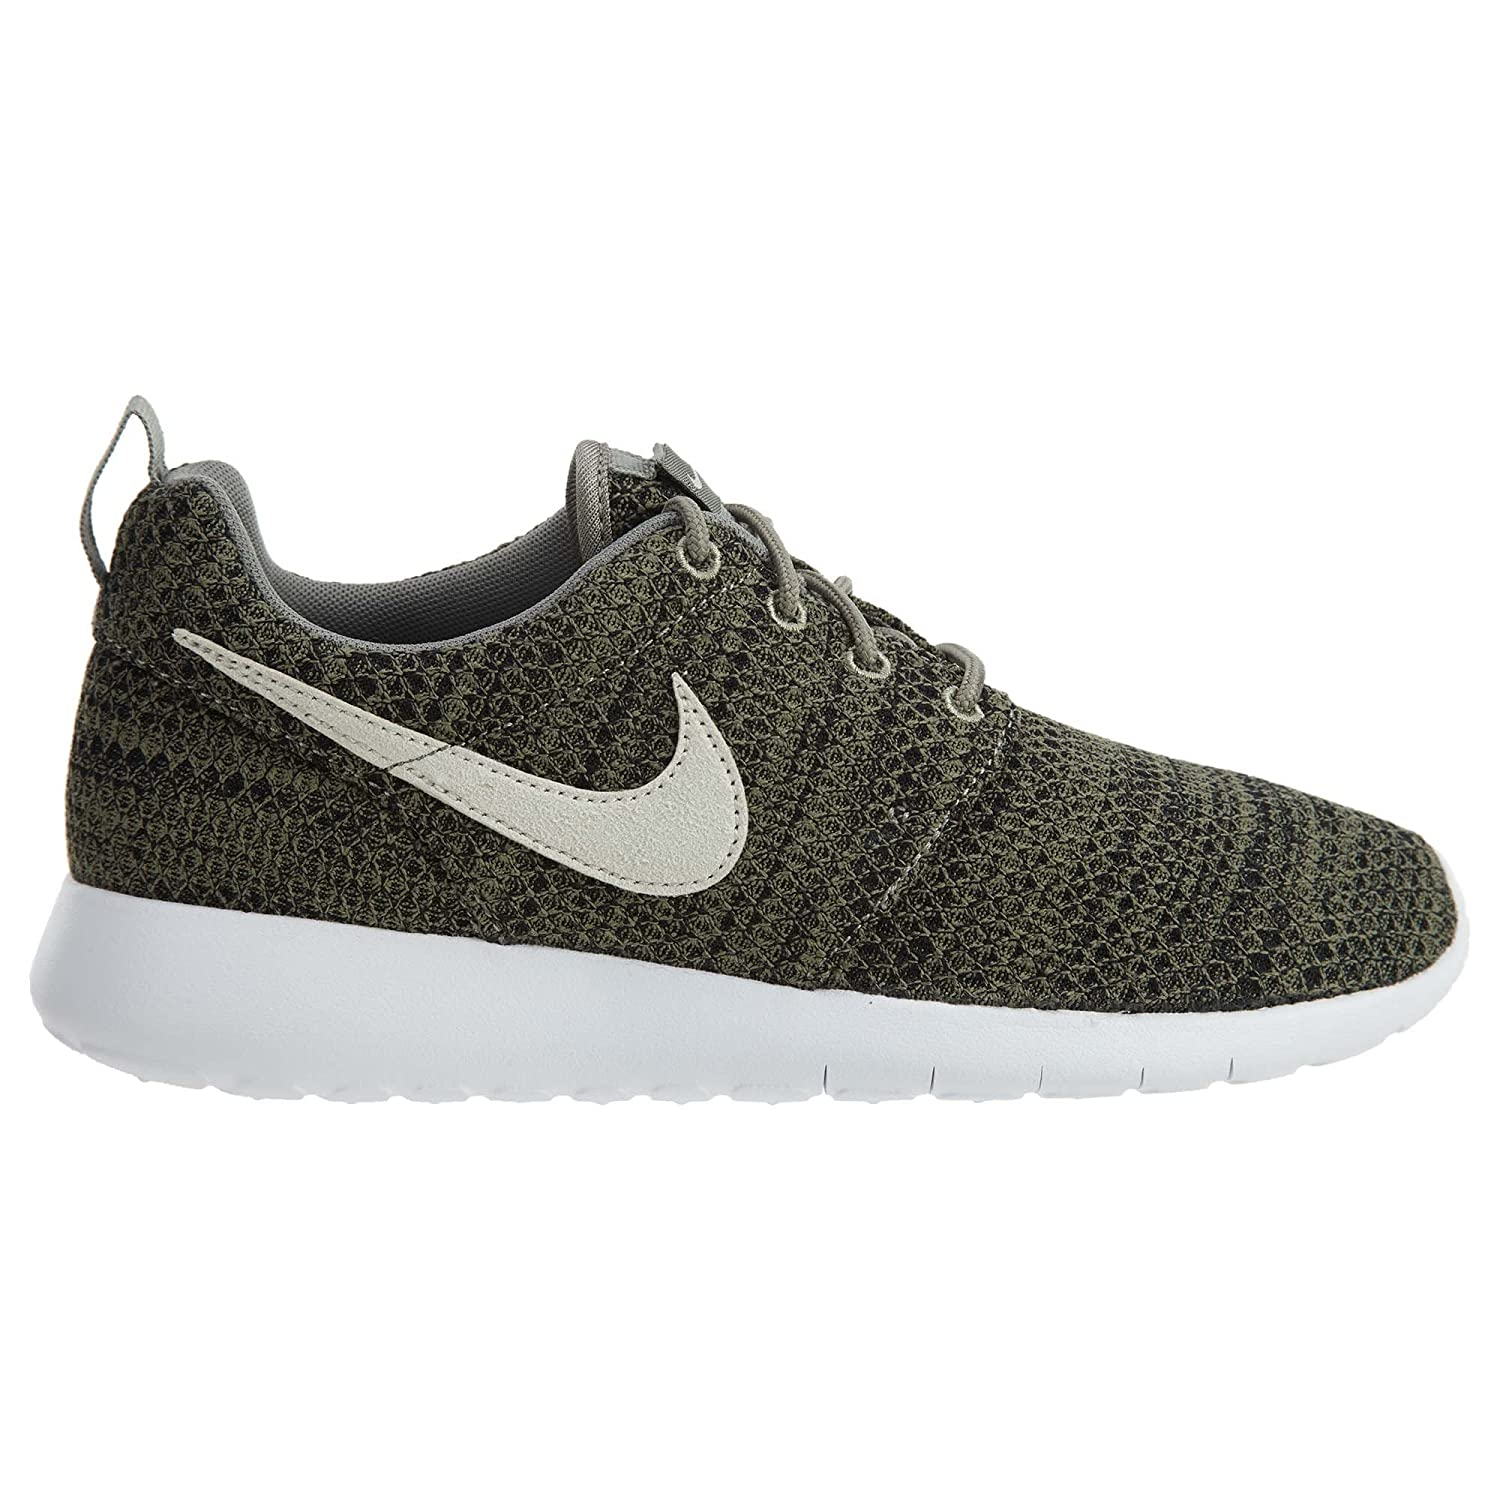 new arrival 10bd3 71b0b Nike Roshe Run, Girls  Running Shoes  Amazon.co.uk  Shoes   Bags